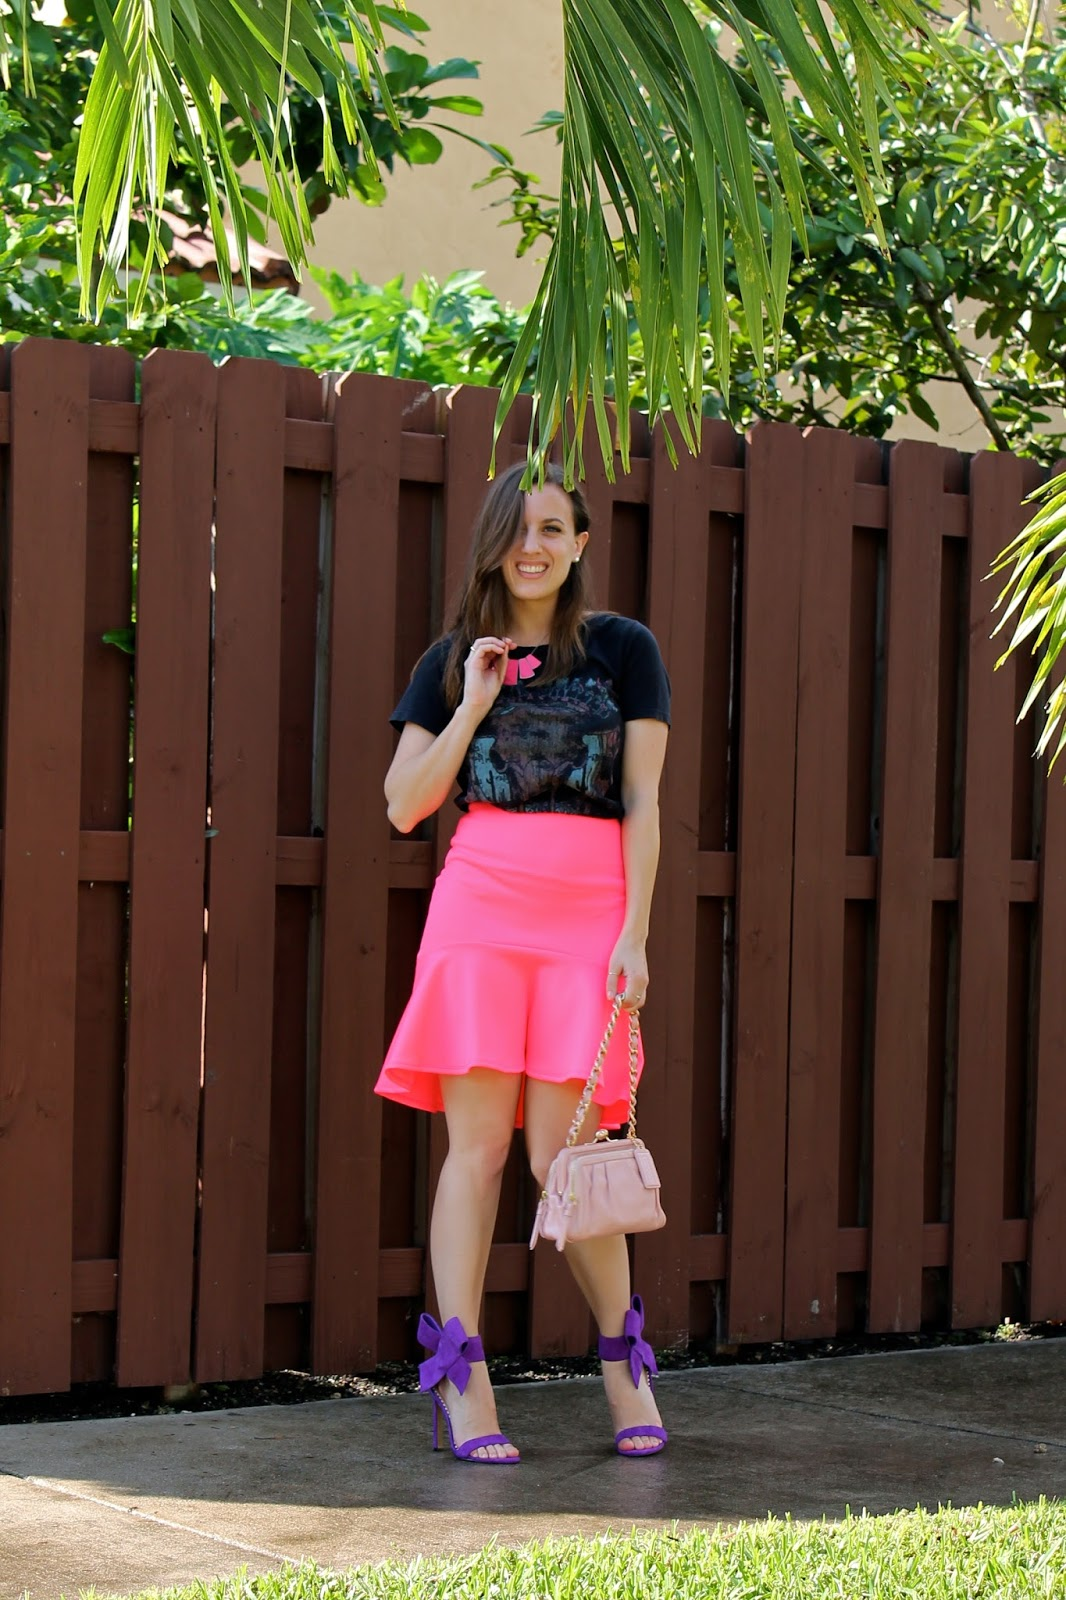 Miami fashion blogger, Miami fashion, Blush Boutique, Macy's, Betsey Johnson, Nordstrom Rack, Nordstrom, Coach, fashion blog, style blog, outfit ideas, what i wore, fashion blogger